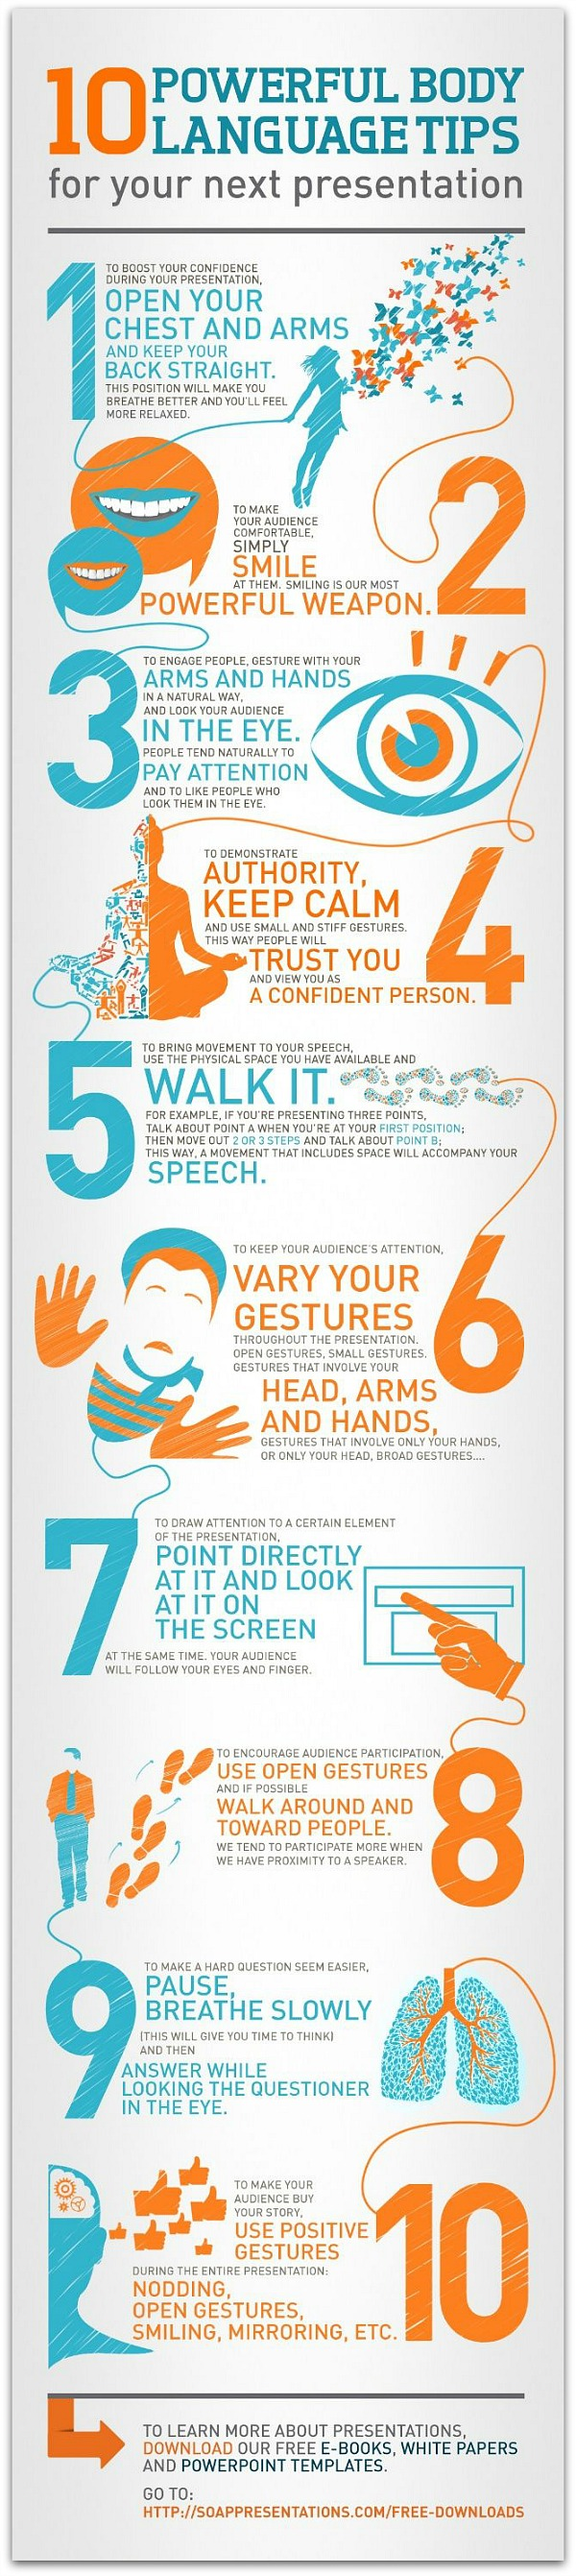 Body_Language_Tips_Infographic